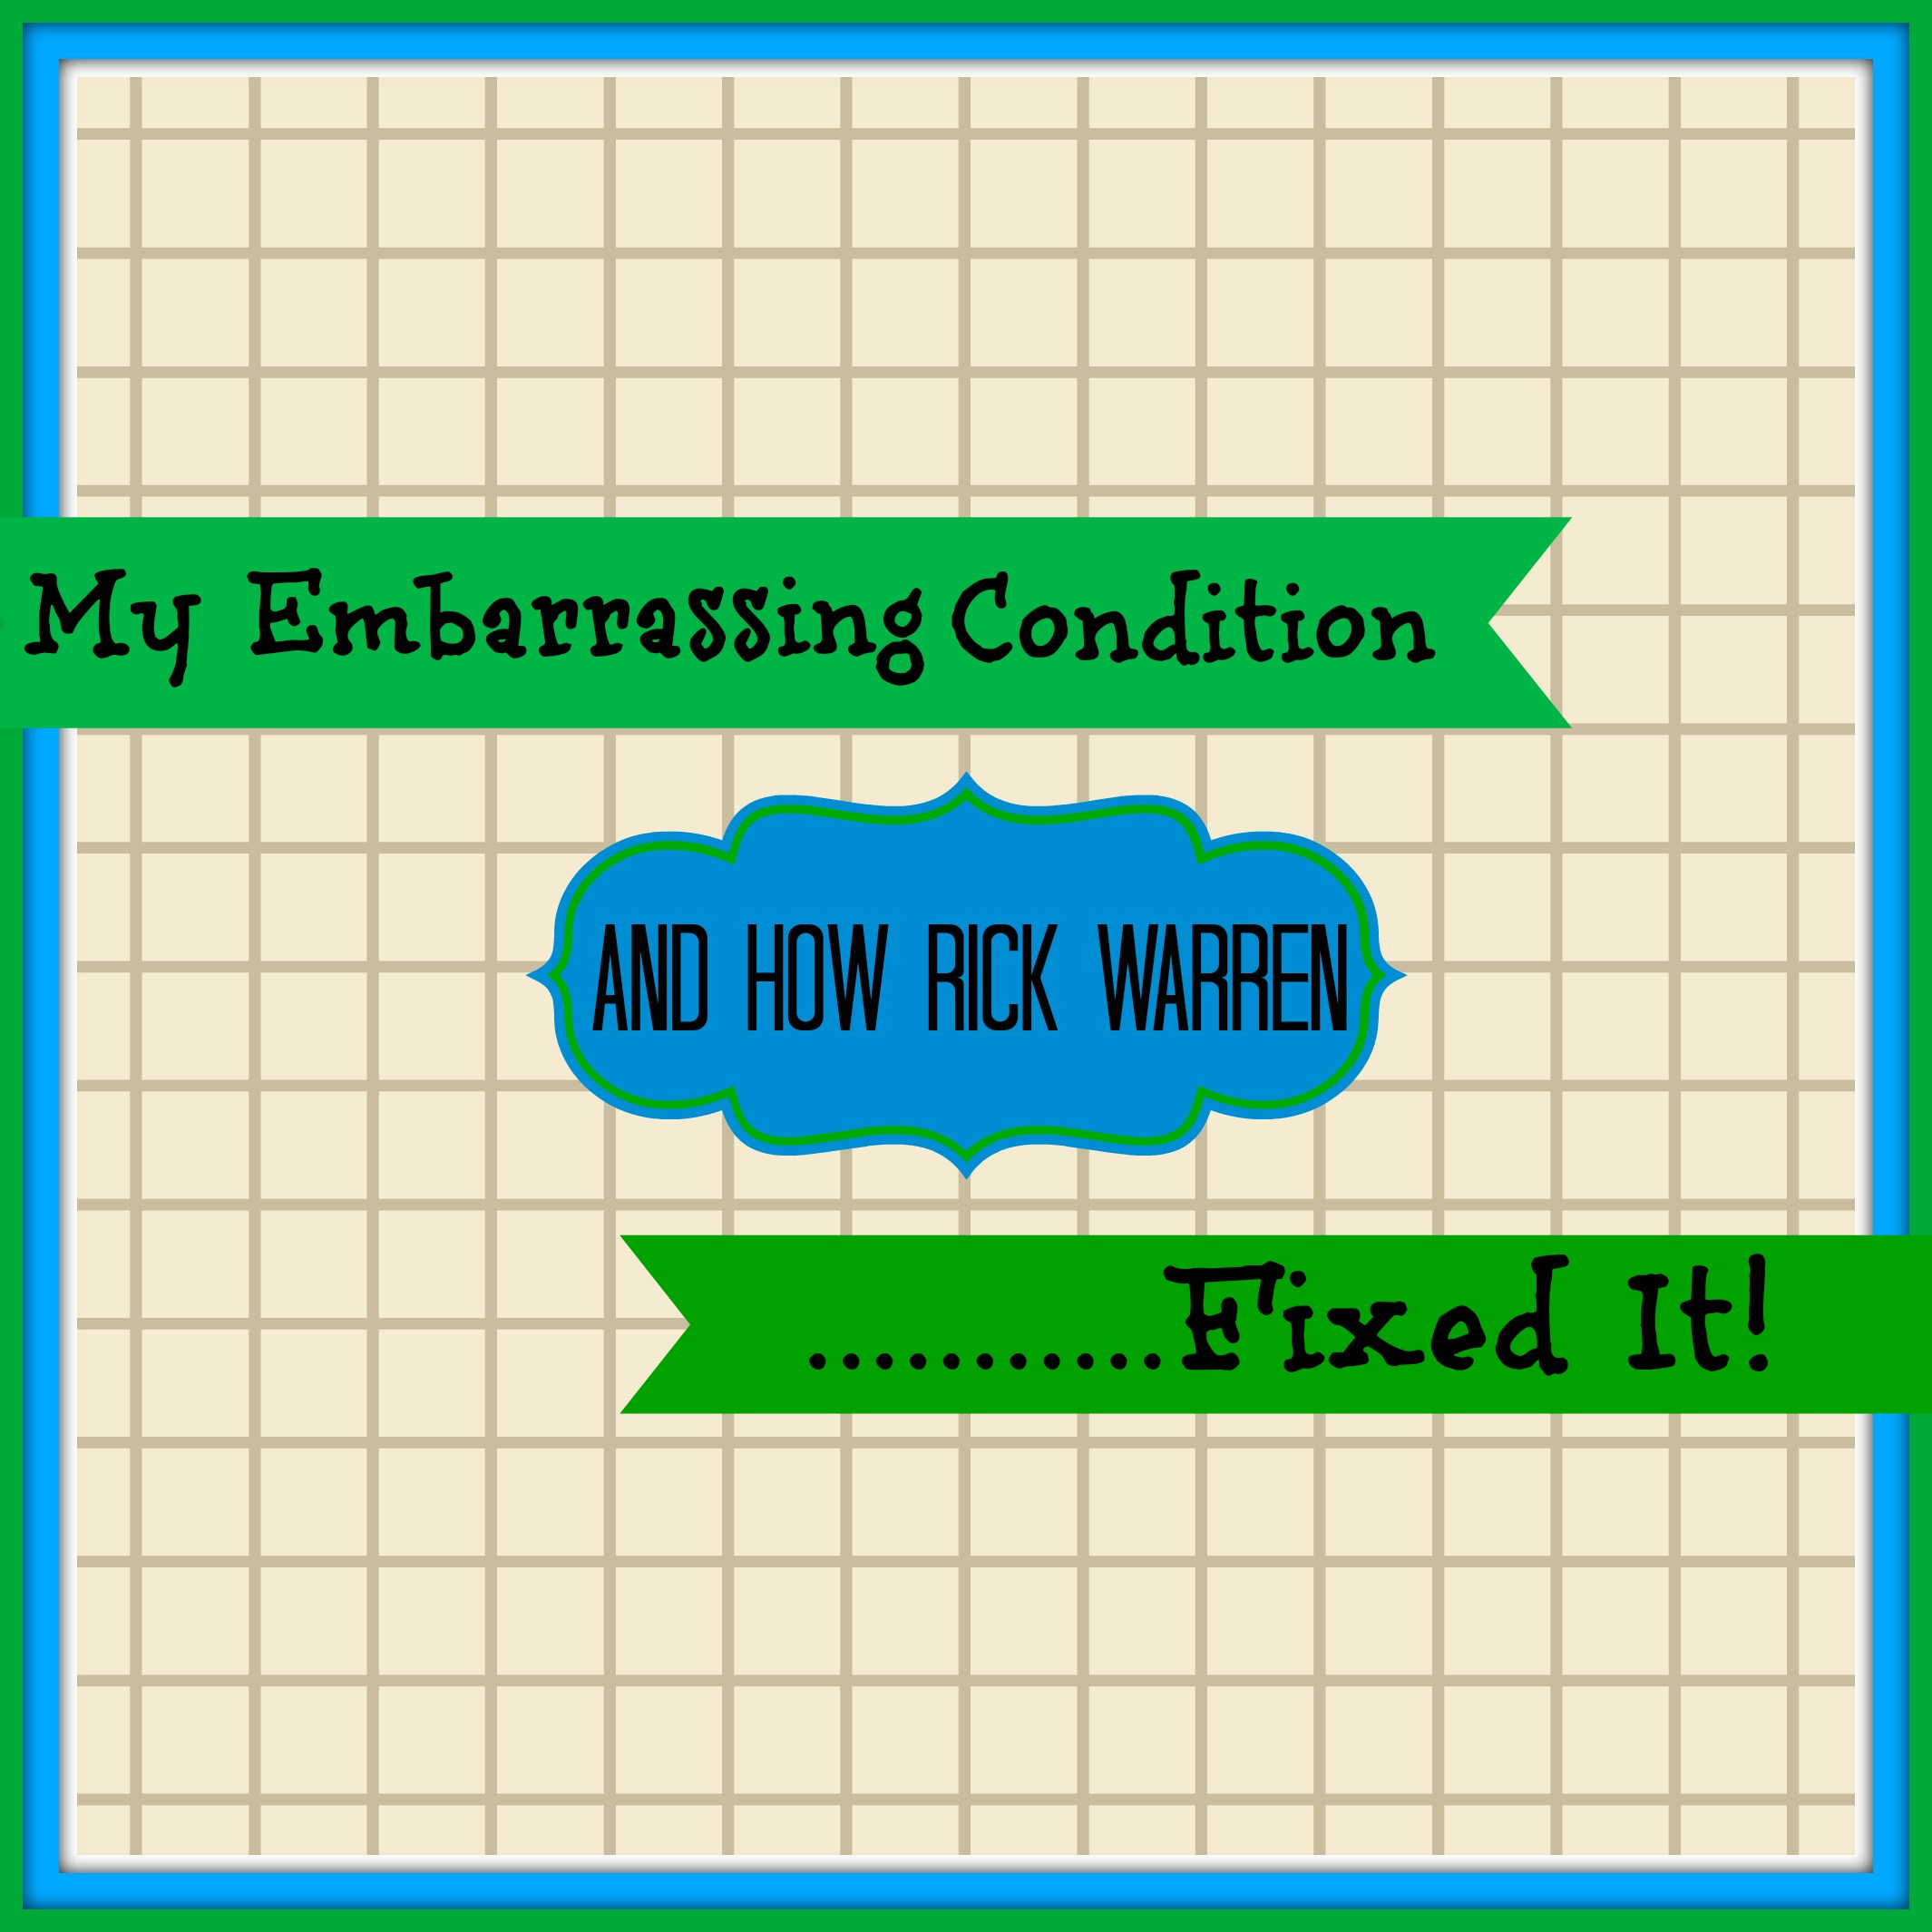 My Embarrassing Condition And How Rick Warren Fixed It!.jpg